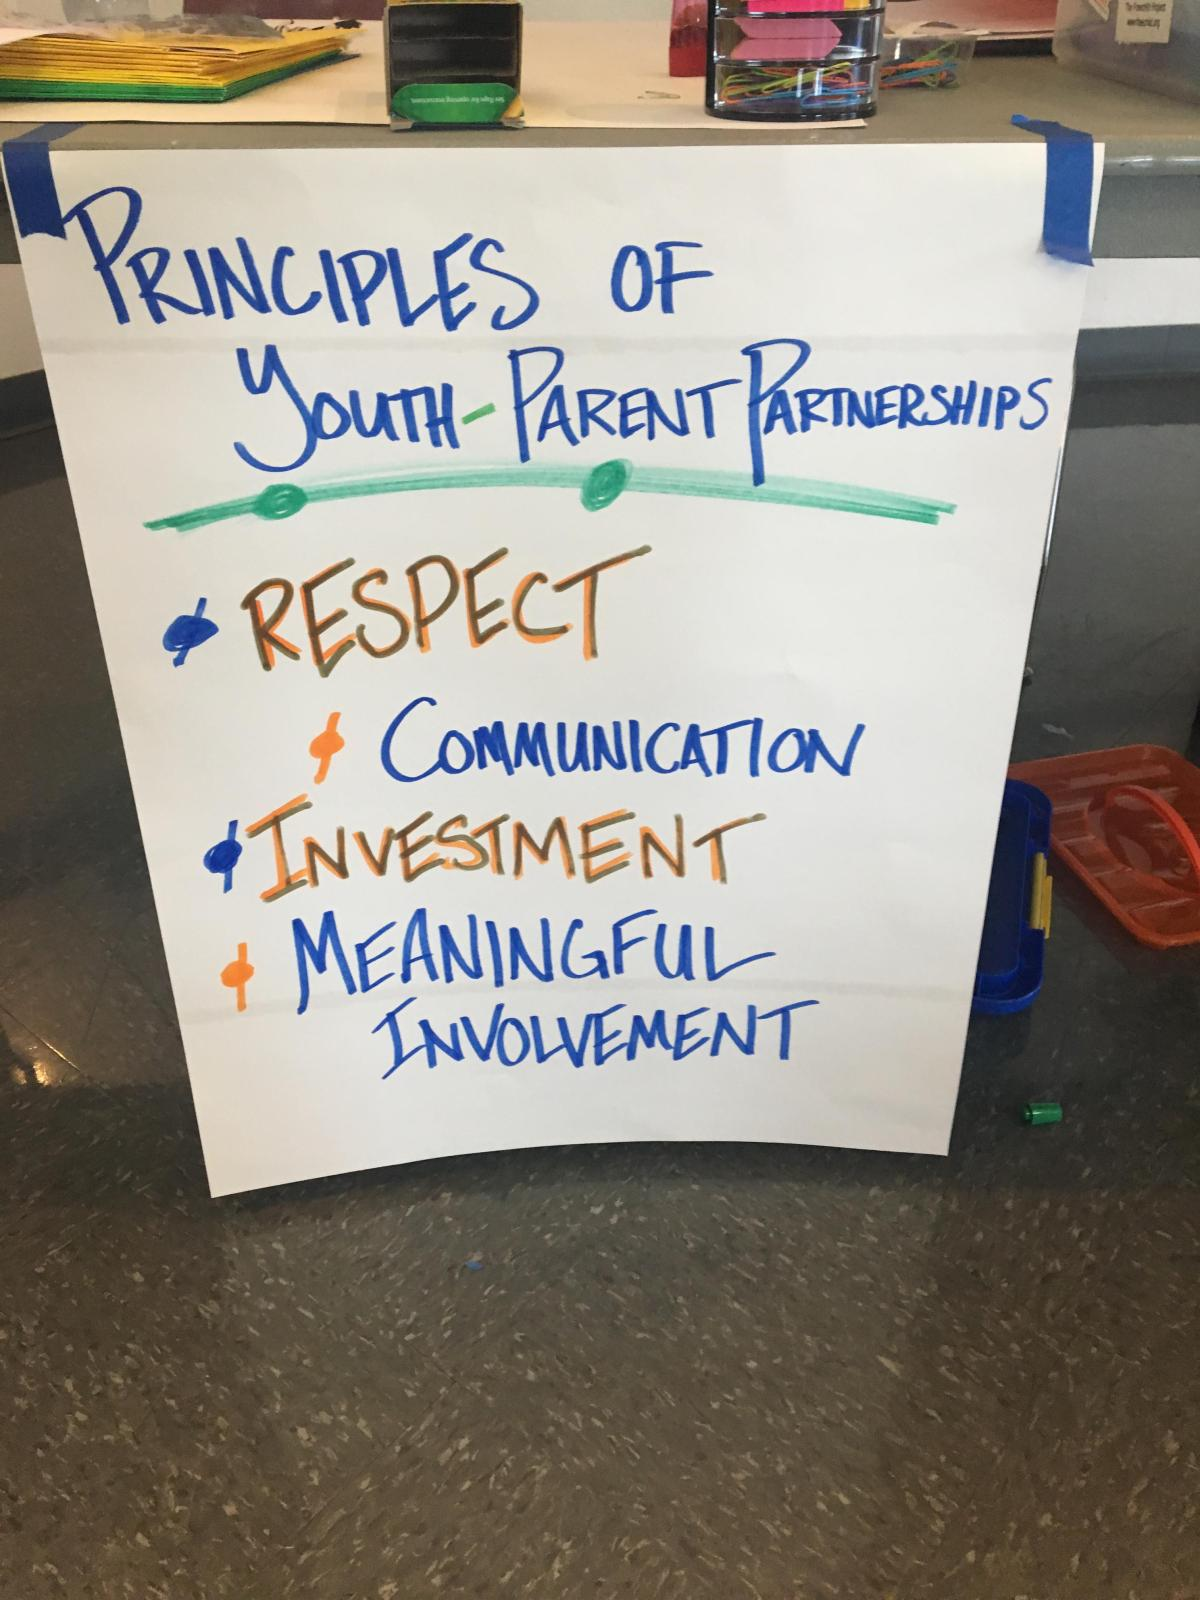 These are the Principles of Youth Parent Partnerships, created by a group of 500 youth in Durham, North Carolina in 1998.